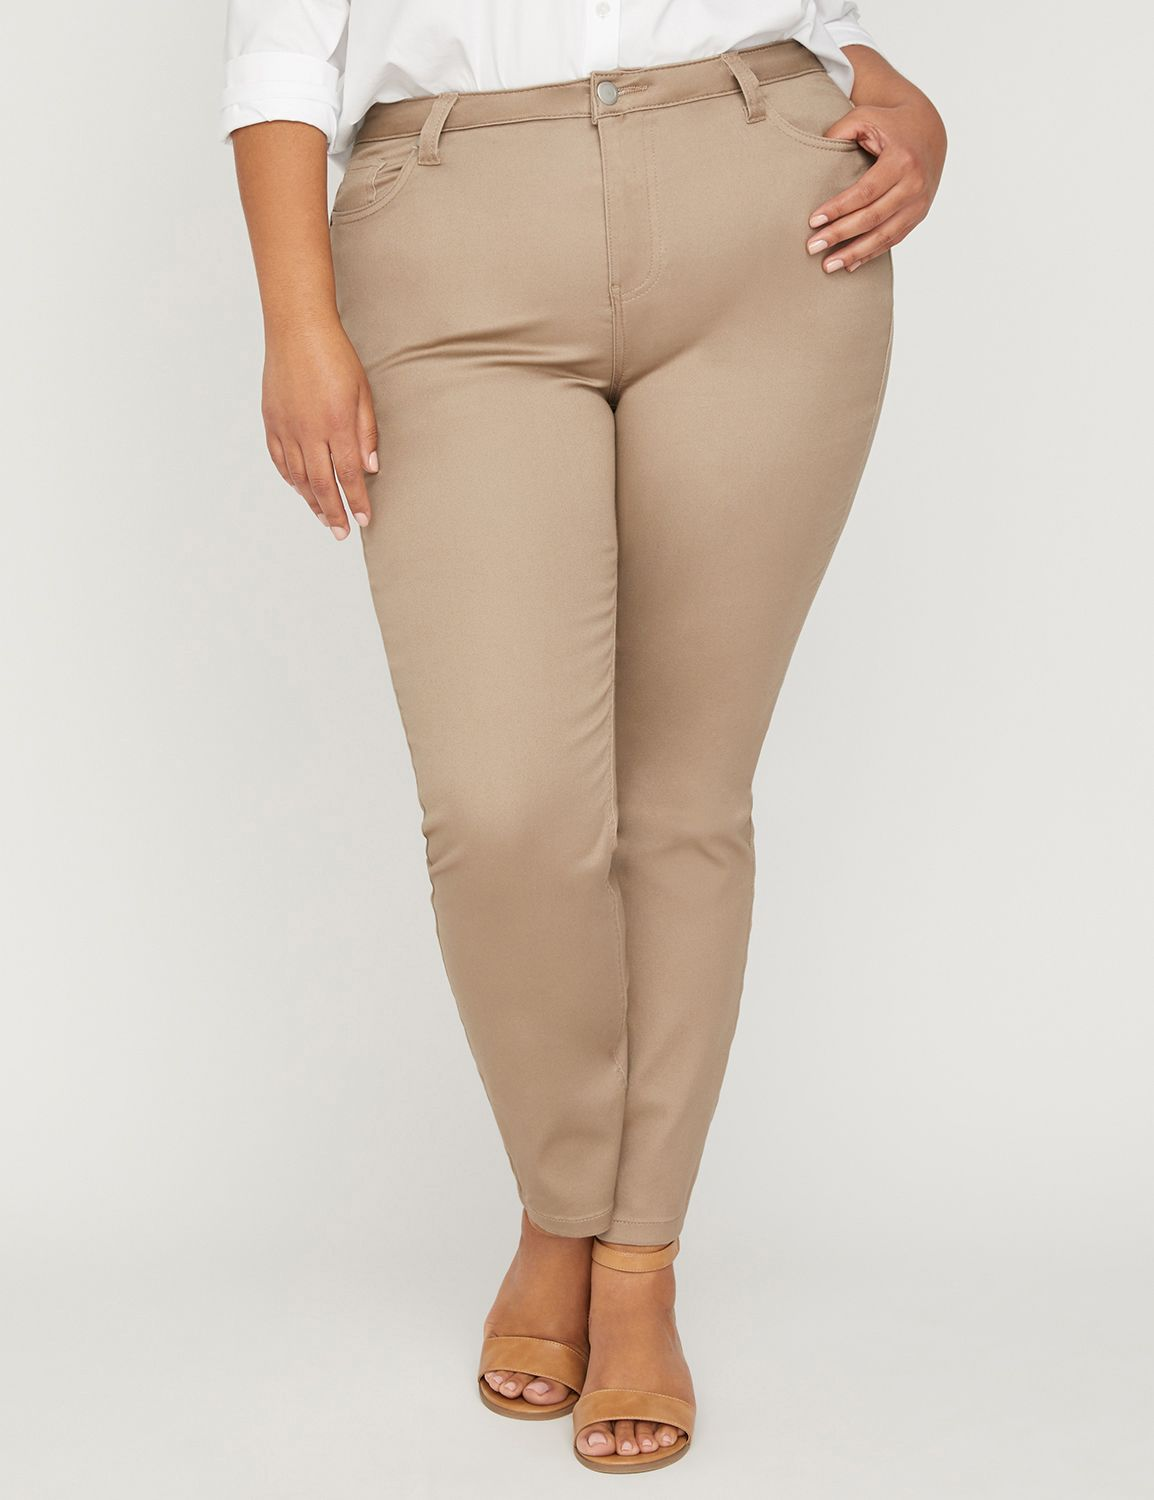 Modern Sateen Stretch Pant Done MP-300083755